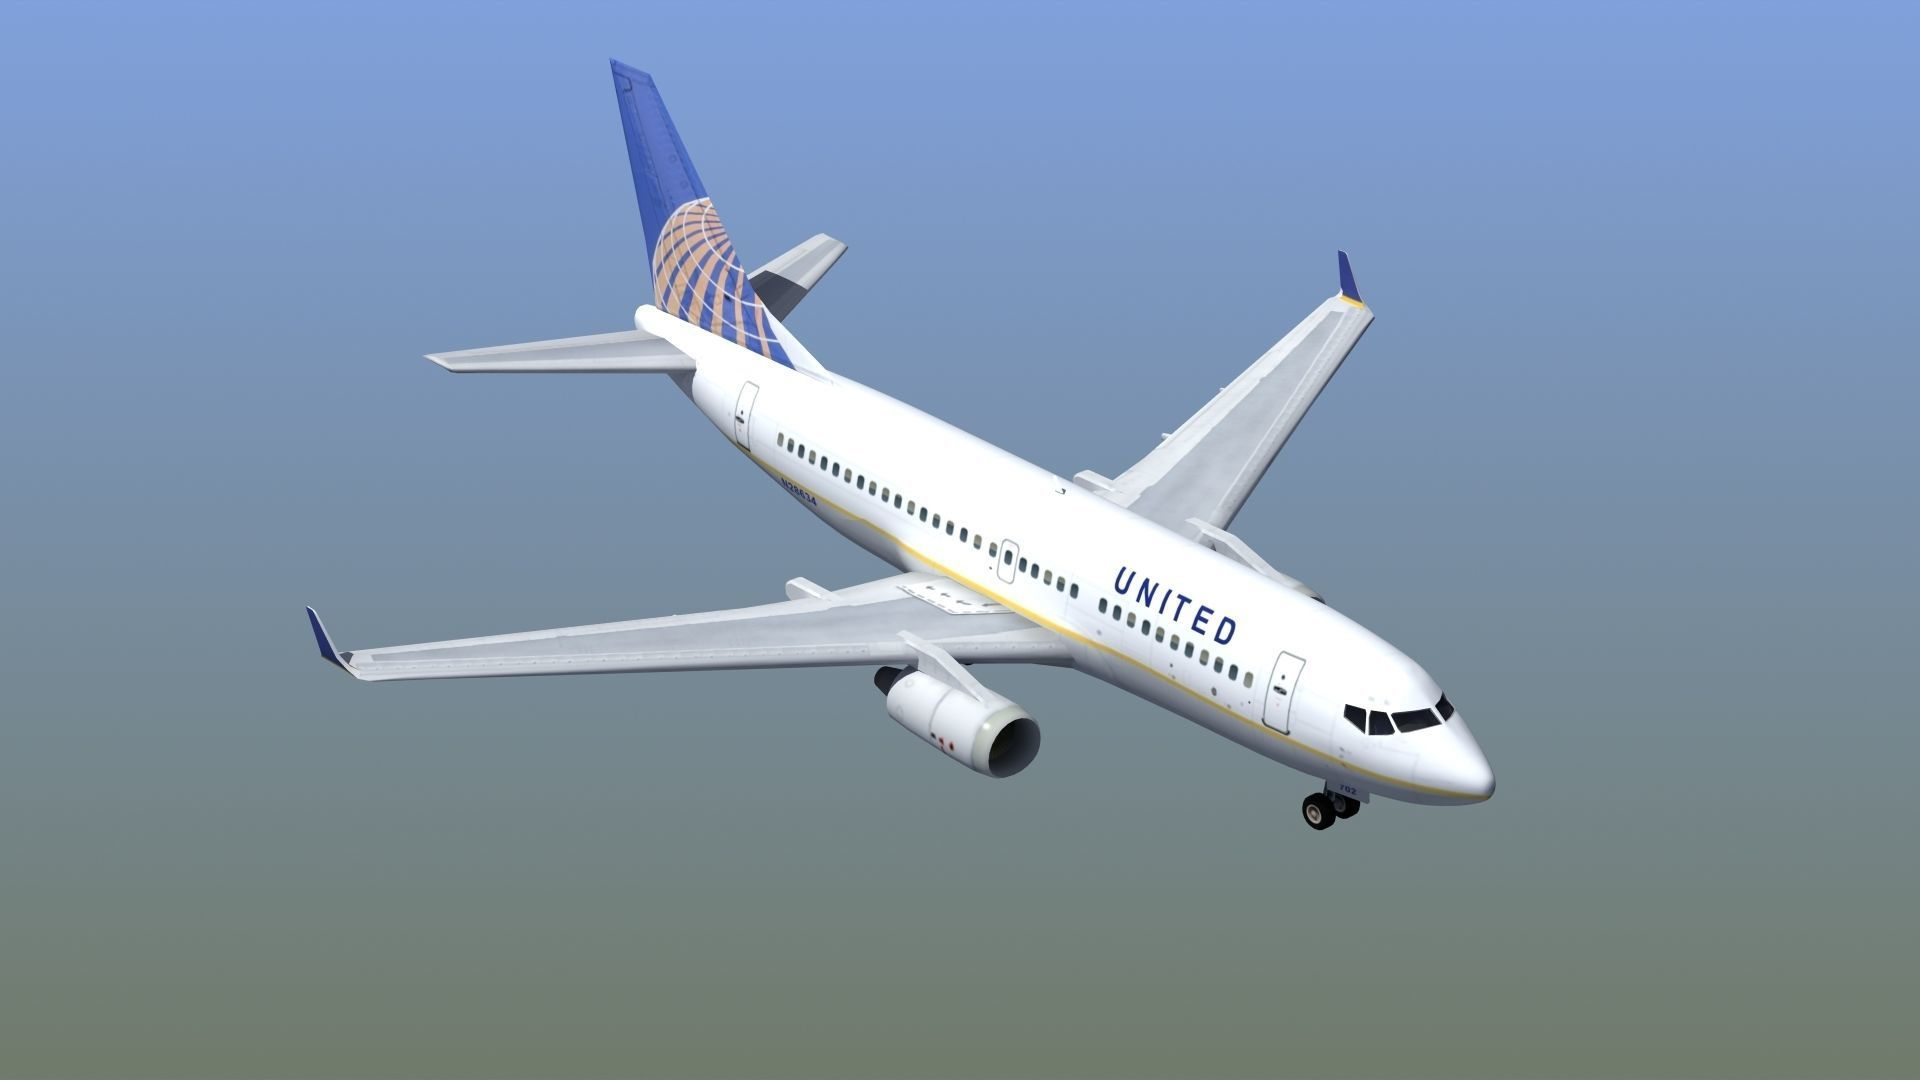 Boeing 737-700 Airliner